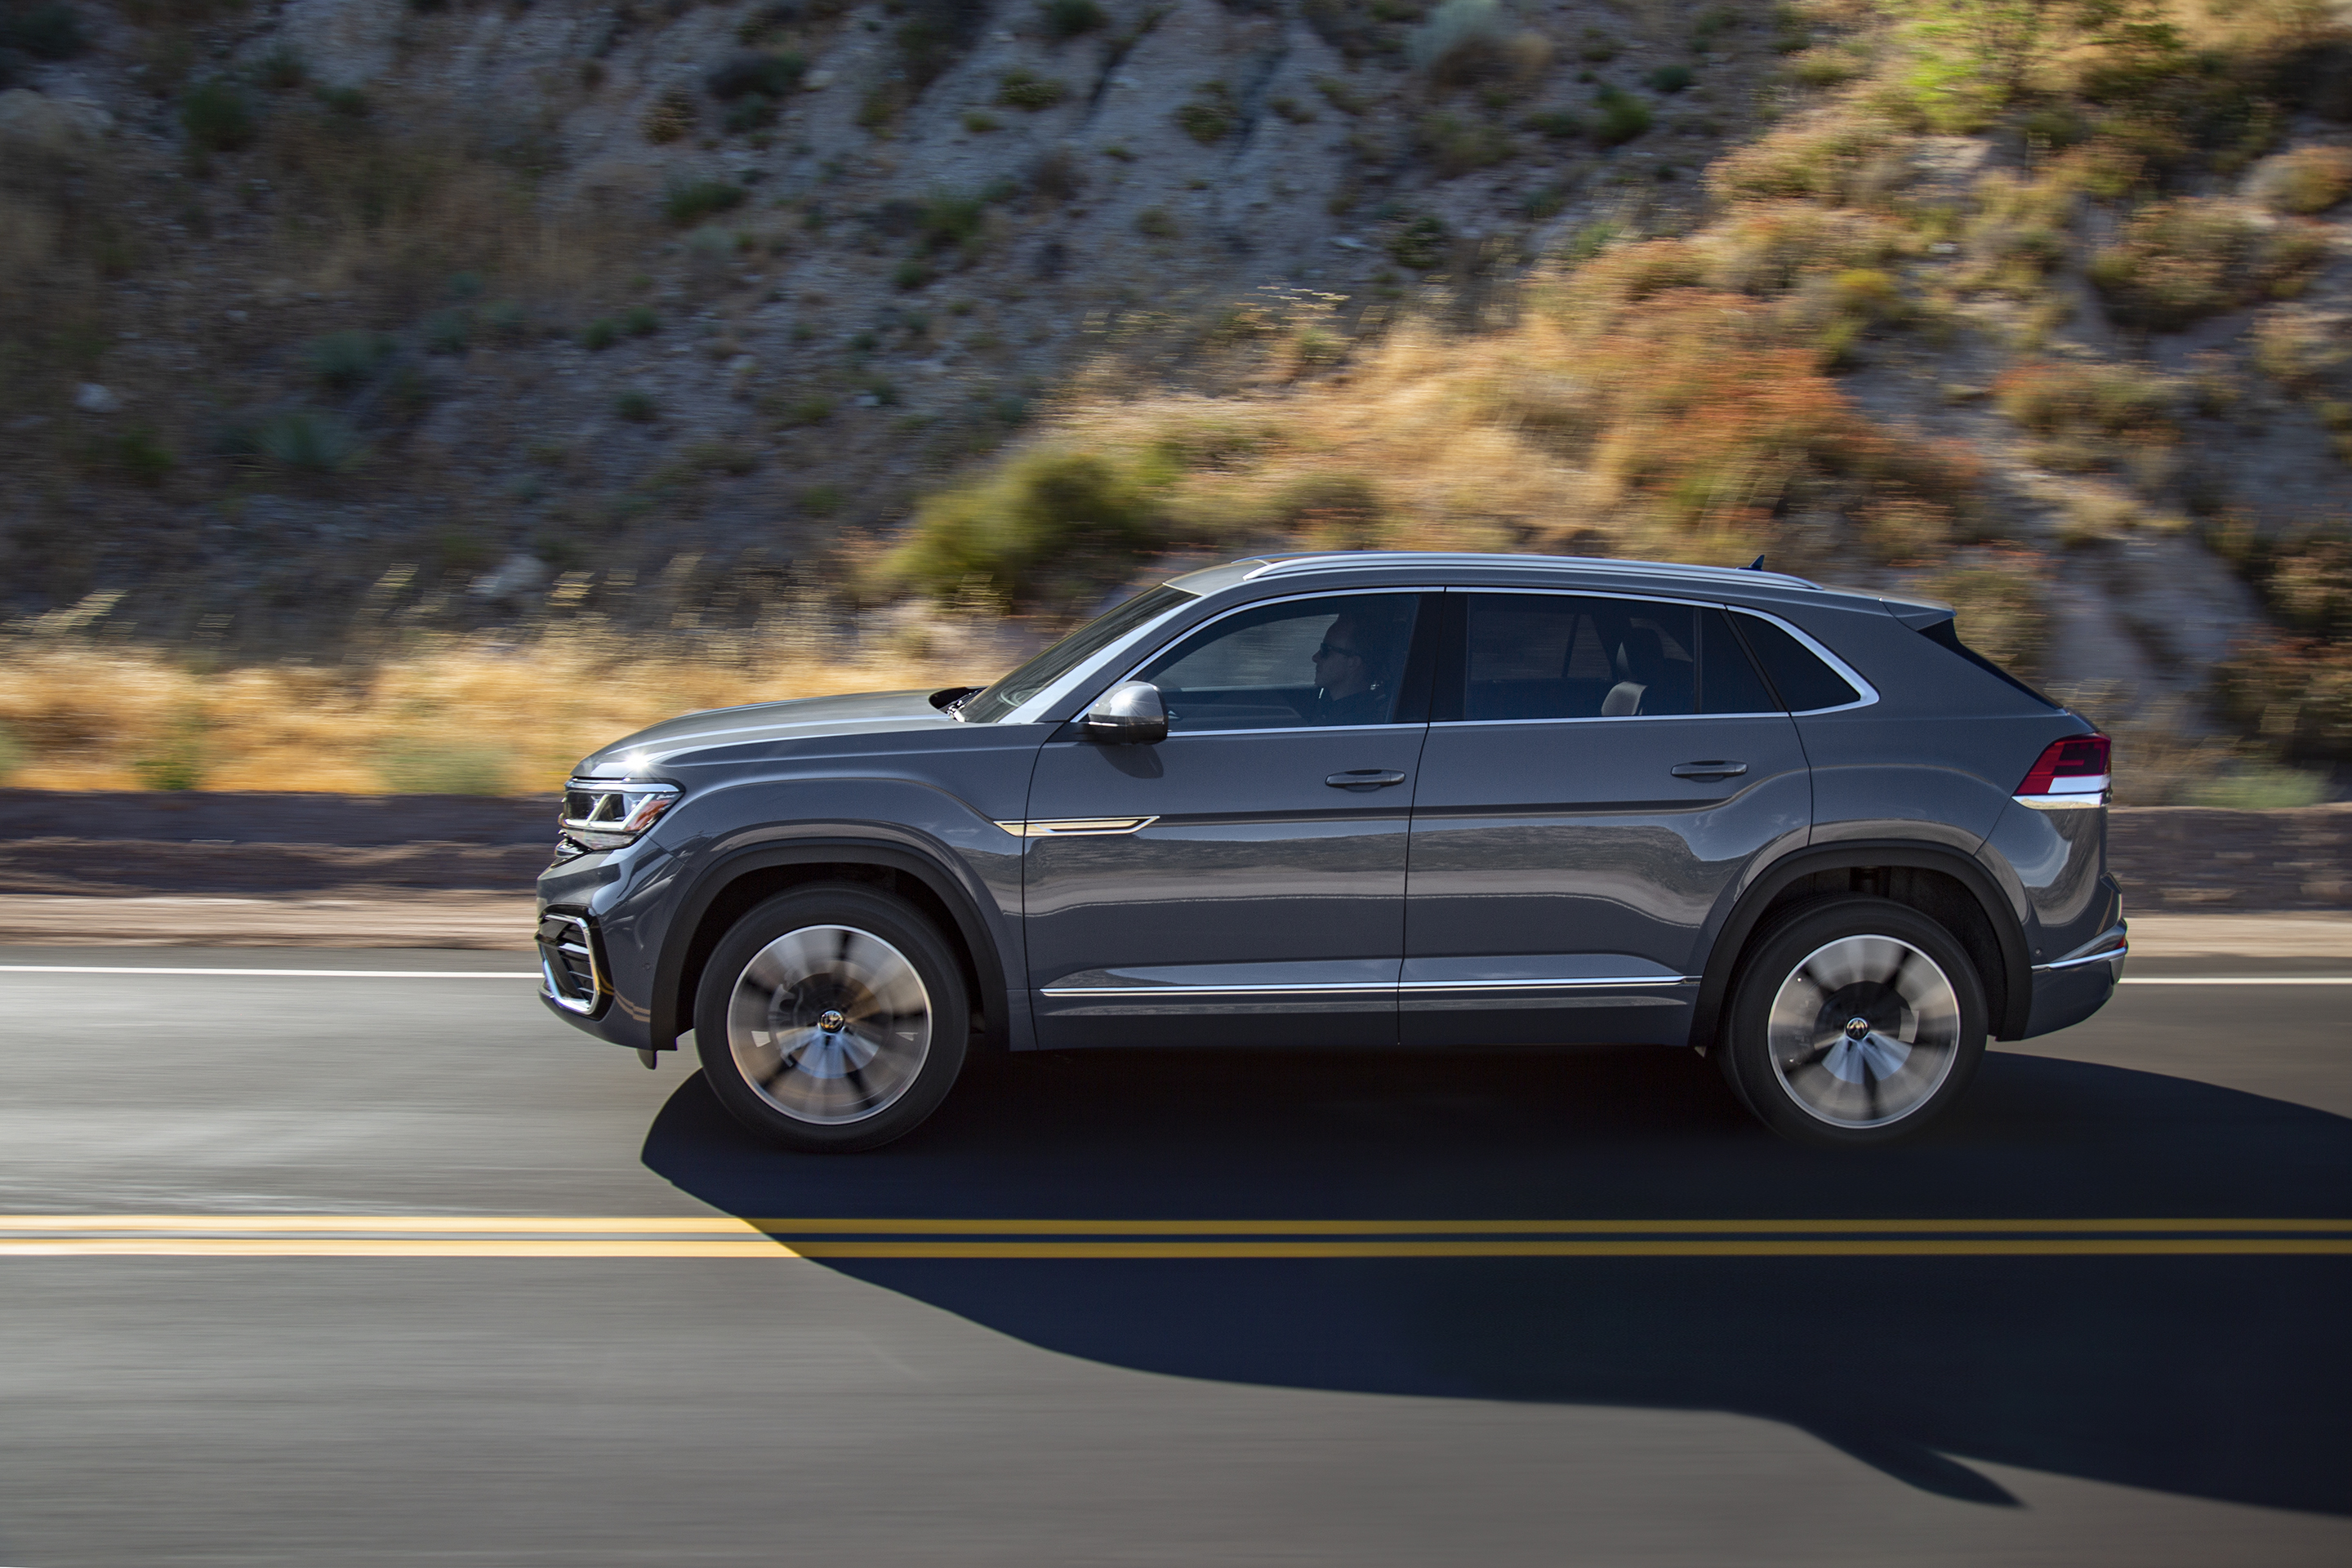 VOLKSWAGEN SURVEY REVEALS STRENGTH OF AMERICAN LOVE AFFAIR WITH SUVS